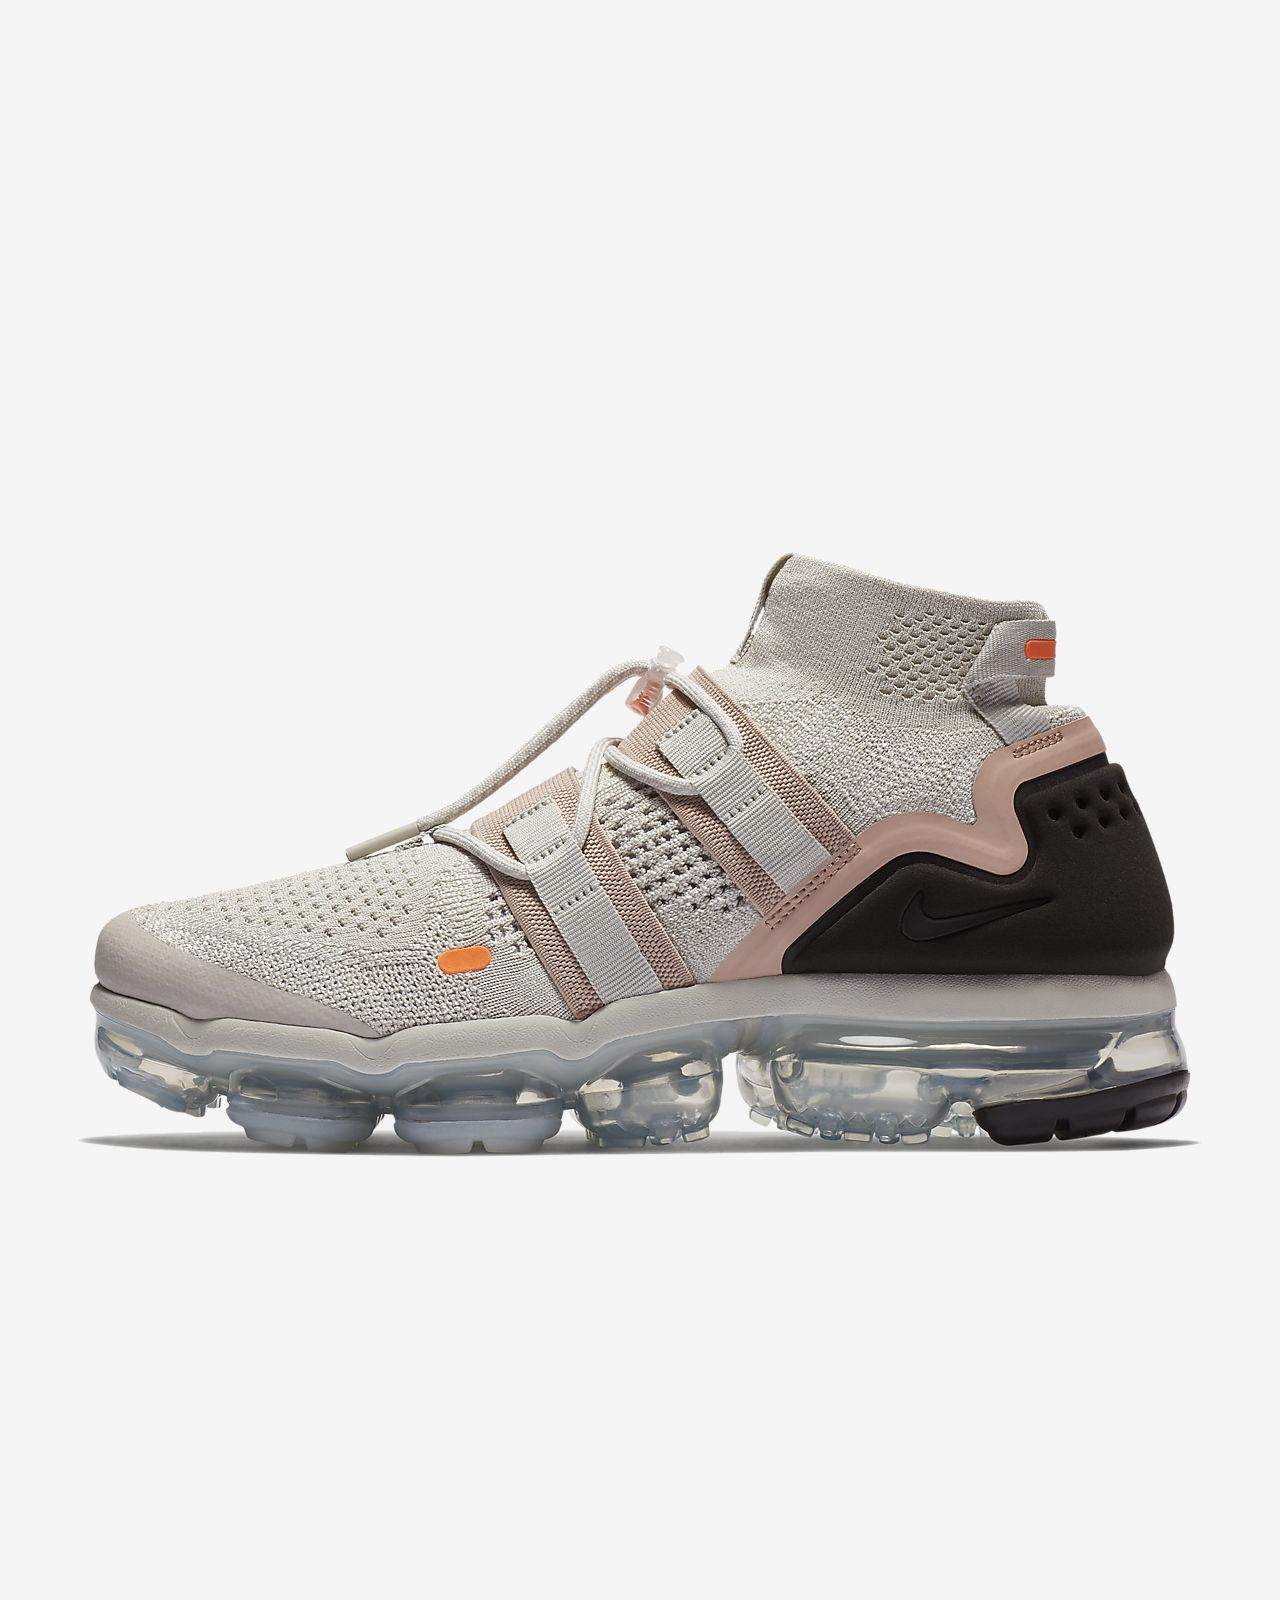 nike air vapormax flyknit utility shoe nike com at